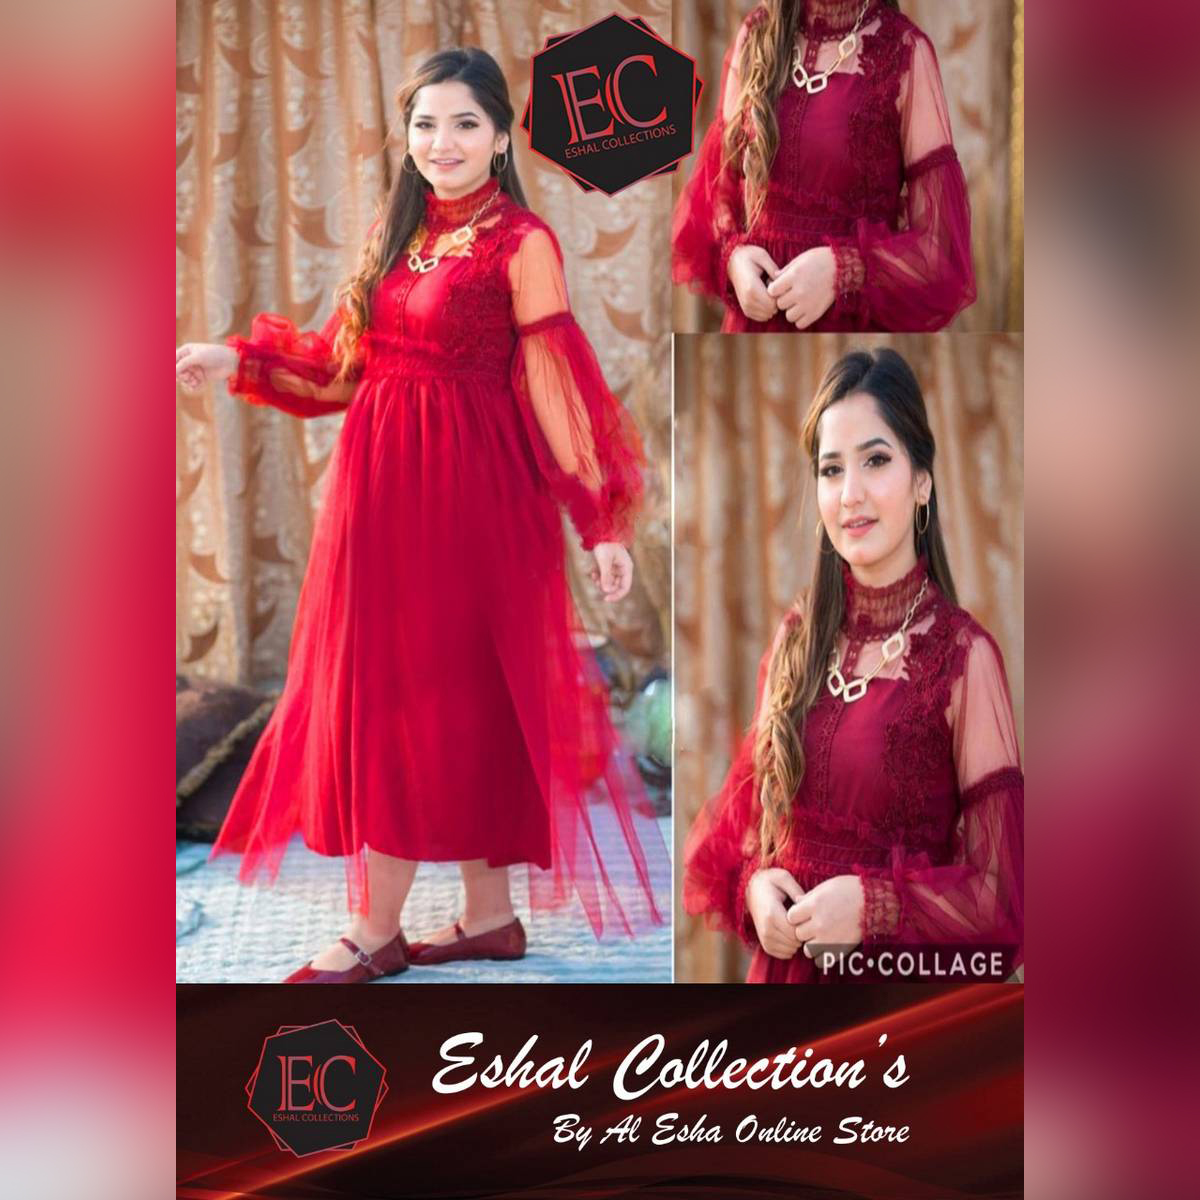 Bidiwalas stylish long frock/ stiched net frock / Designer net fock/ New frock style/ Mirror Maxi with trouser/ Ready to Wear/ For Women and Girls/ net frock with cotton inner / Trending/ 1 piece